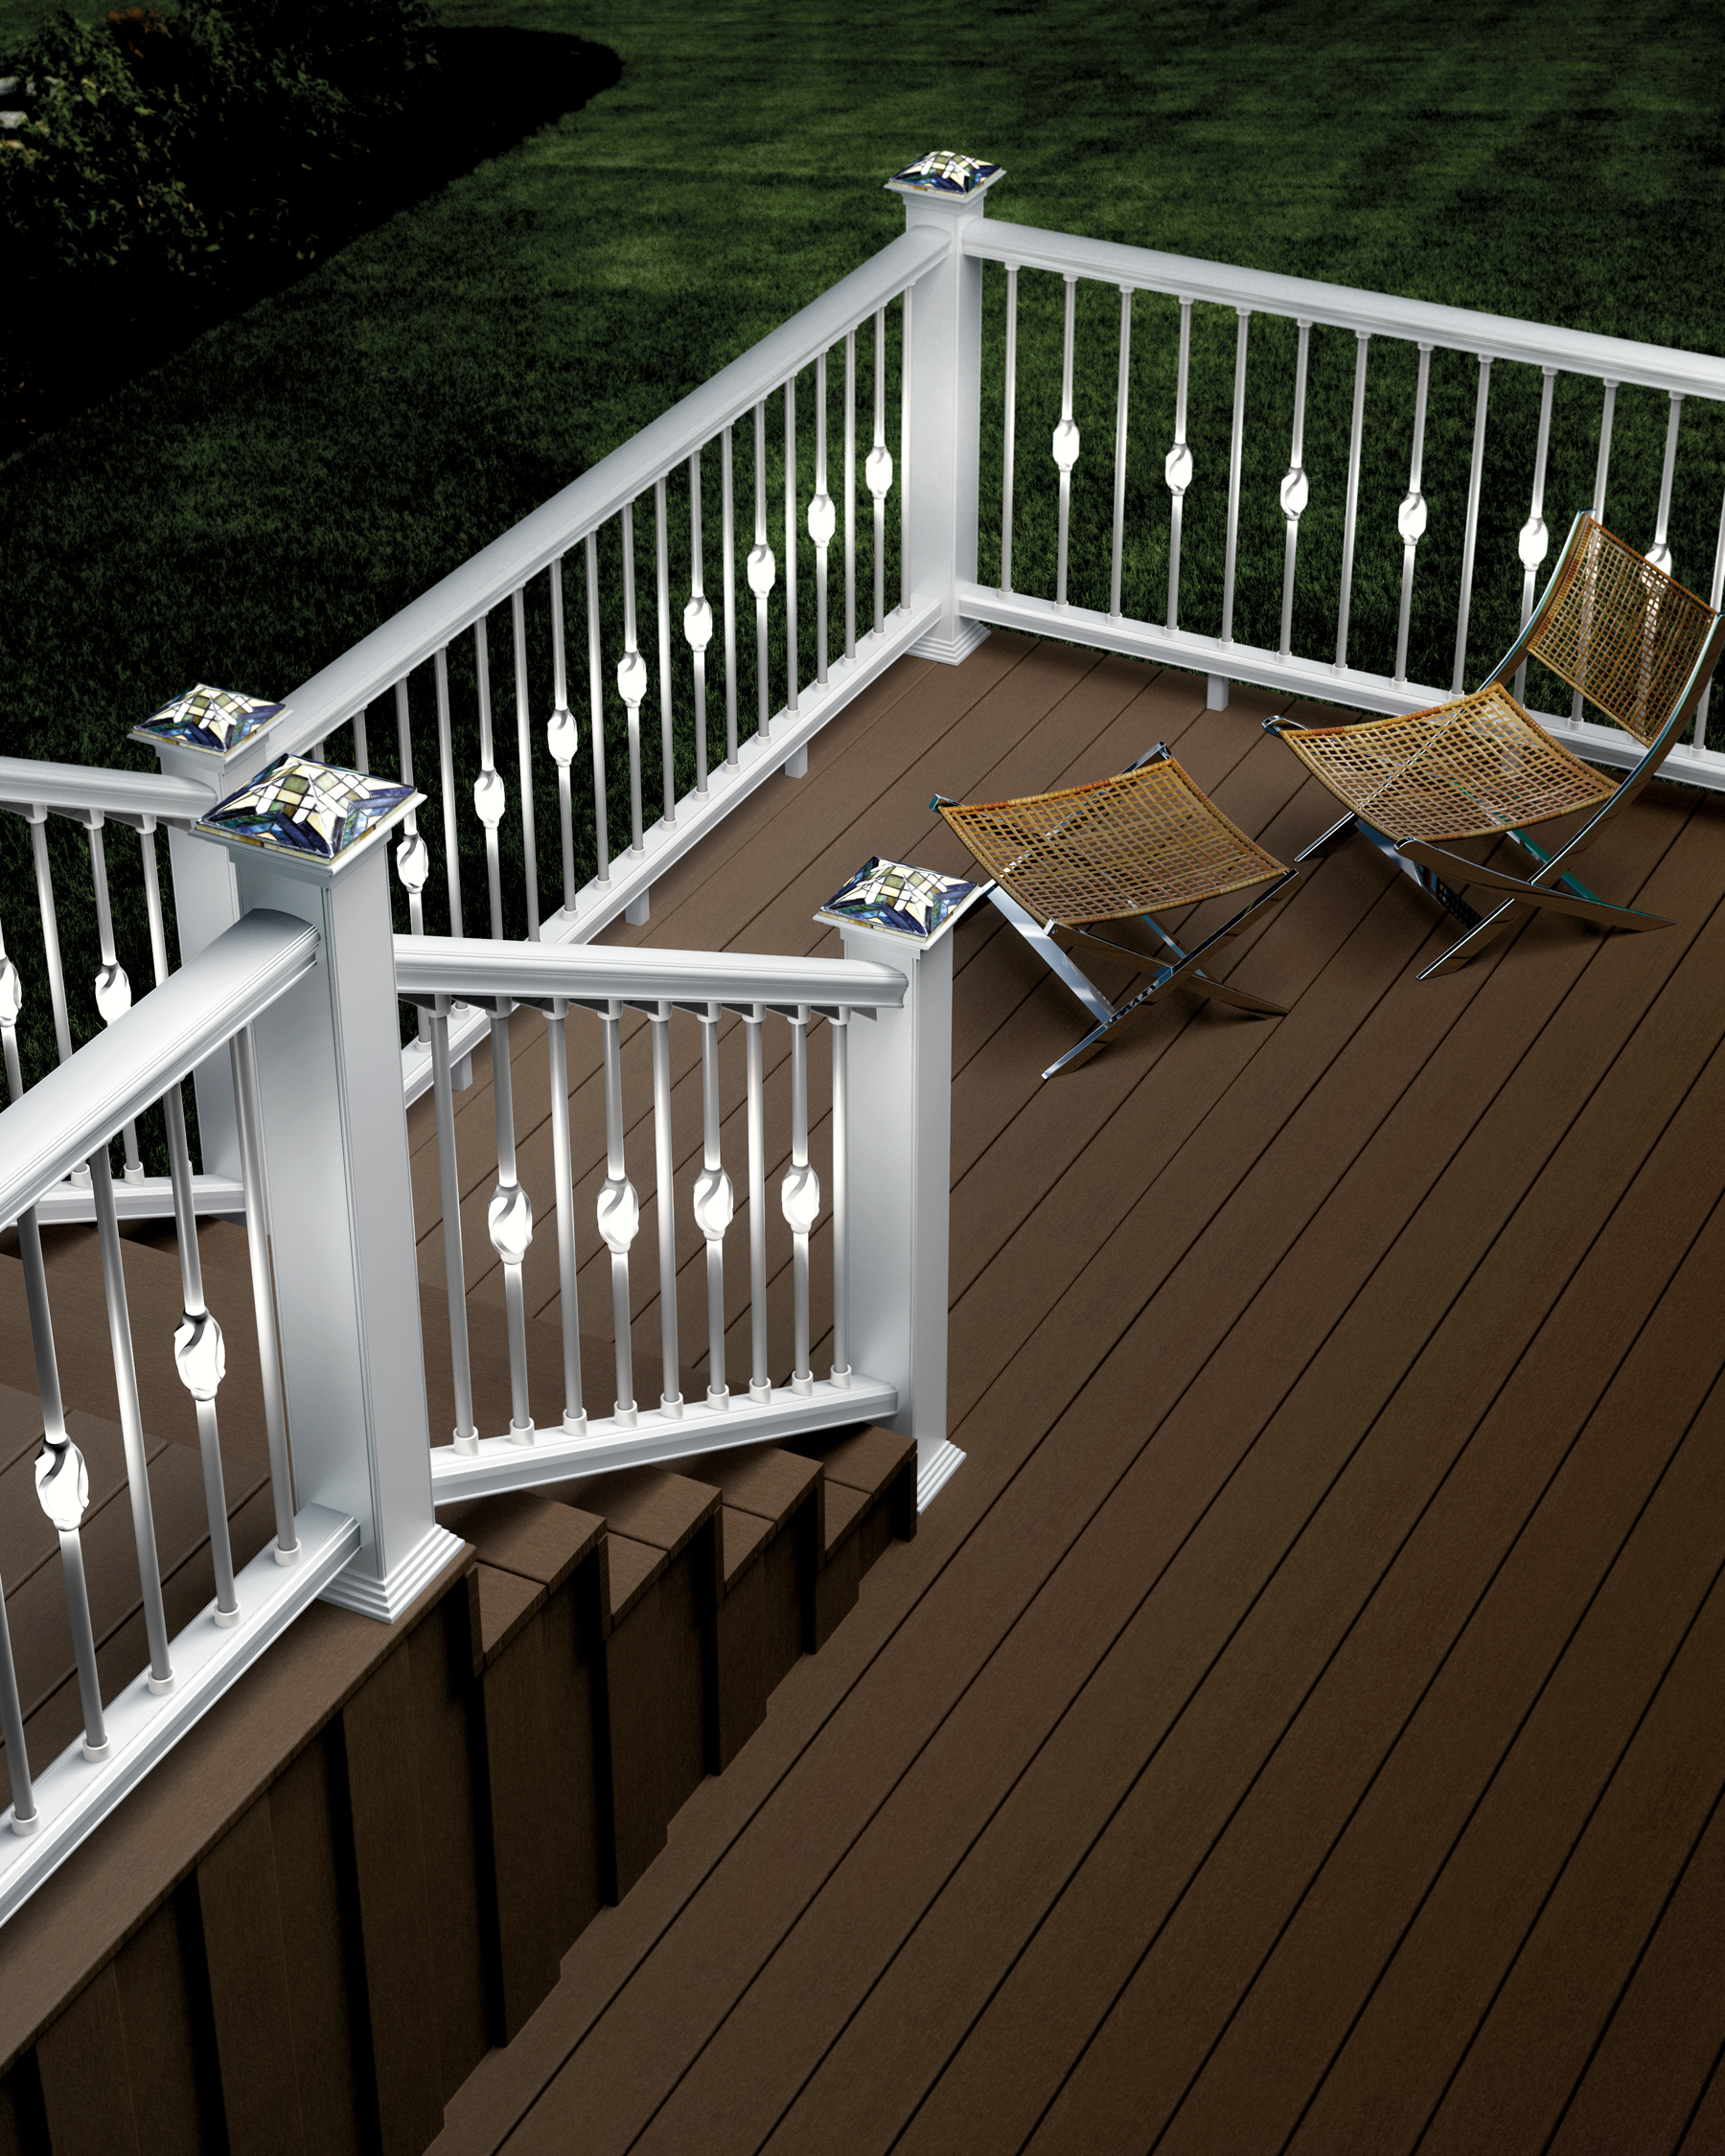 Image of: Deckorators Introduces New Low Voltage Accent Lighting For Decks And Outdoor Living Areas